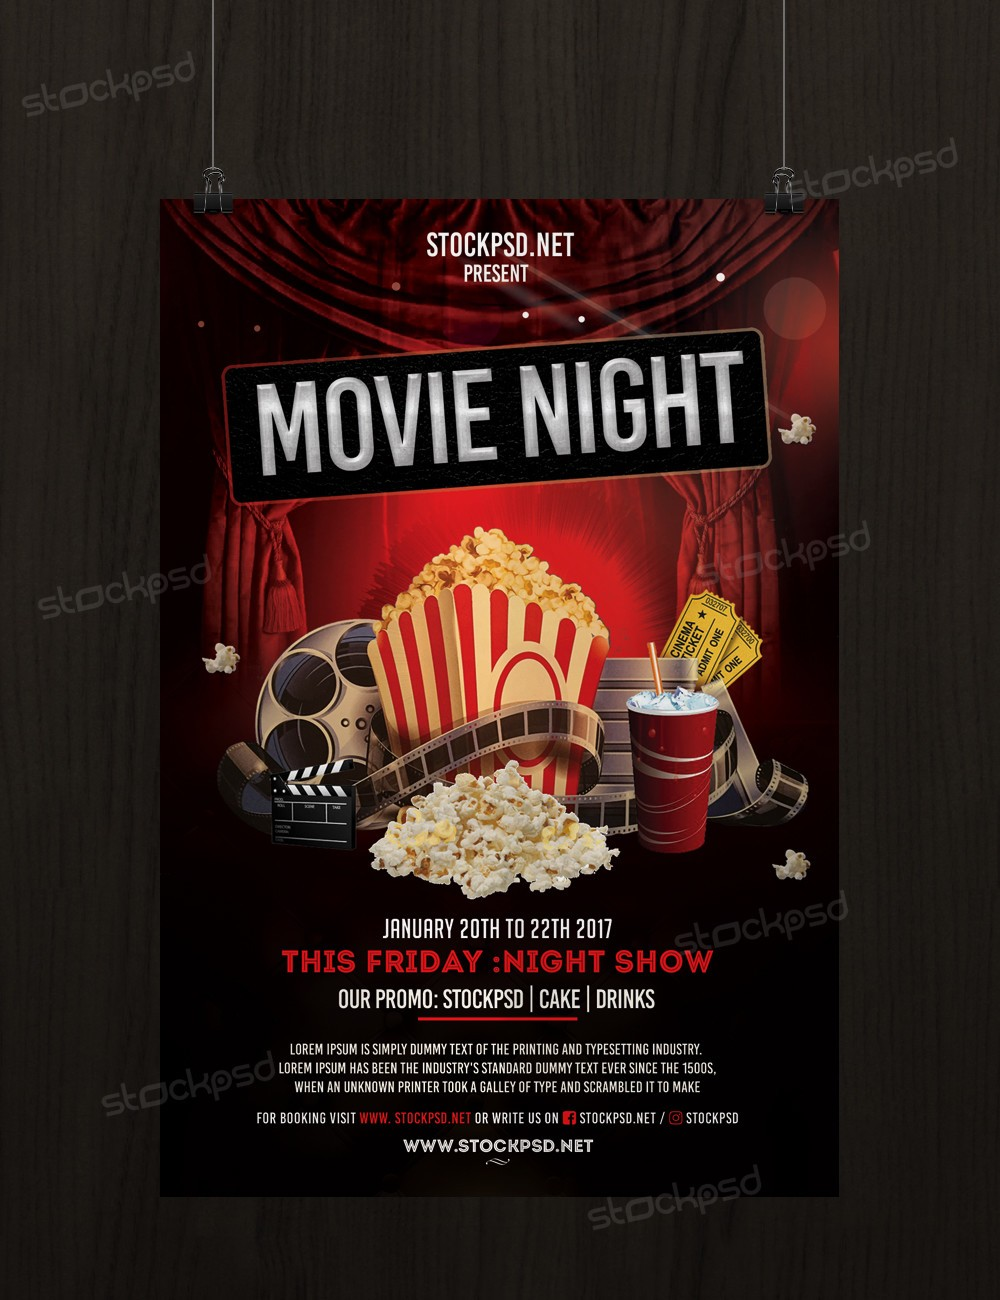 Stockpsd Net Free Psd Flyers Brochures And More Movie